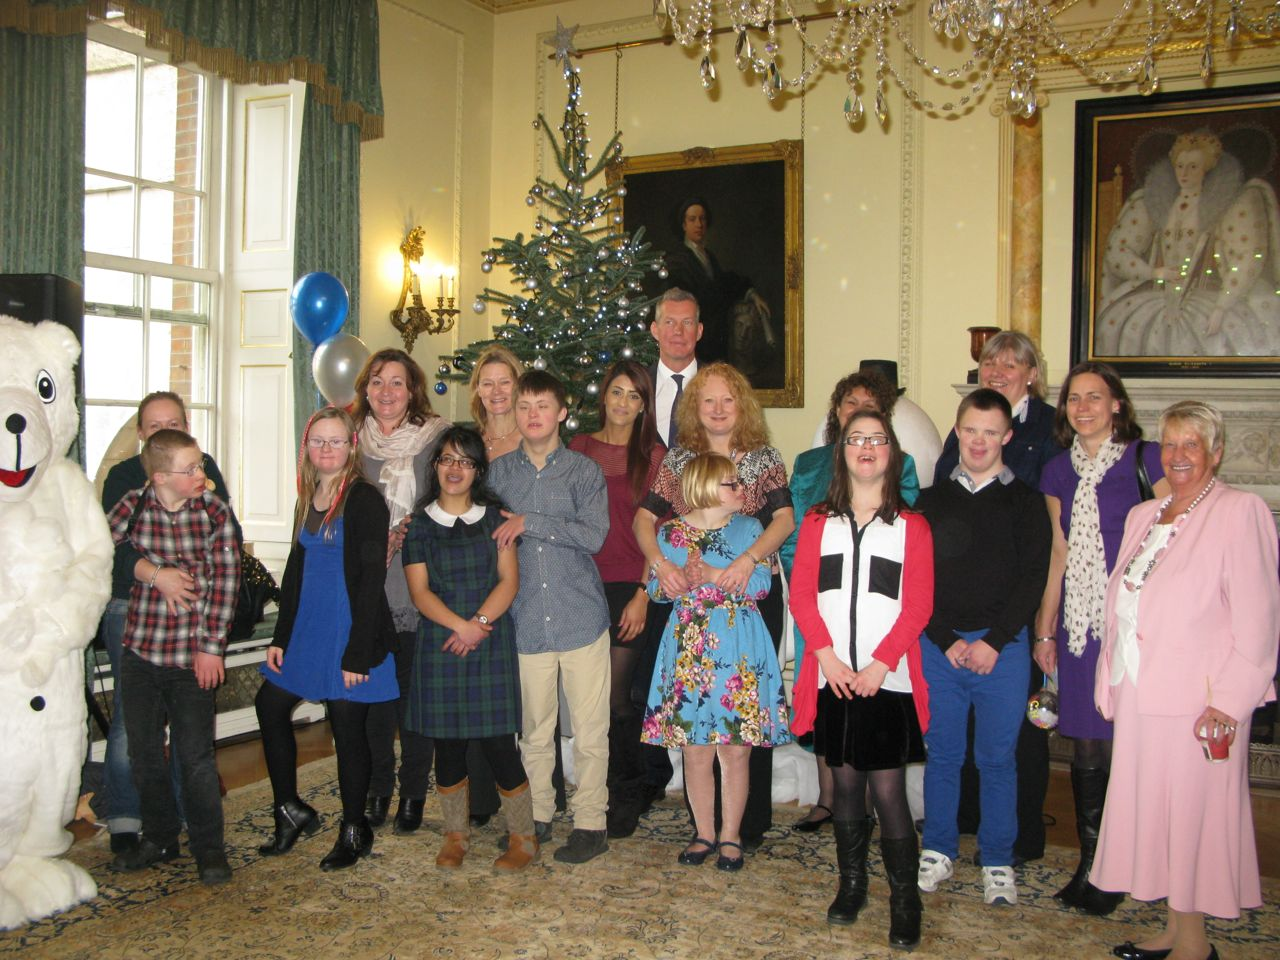 Christmas Party at 10 Downing Street